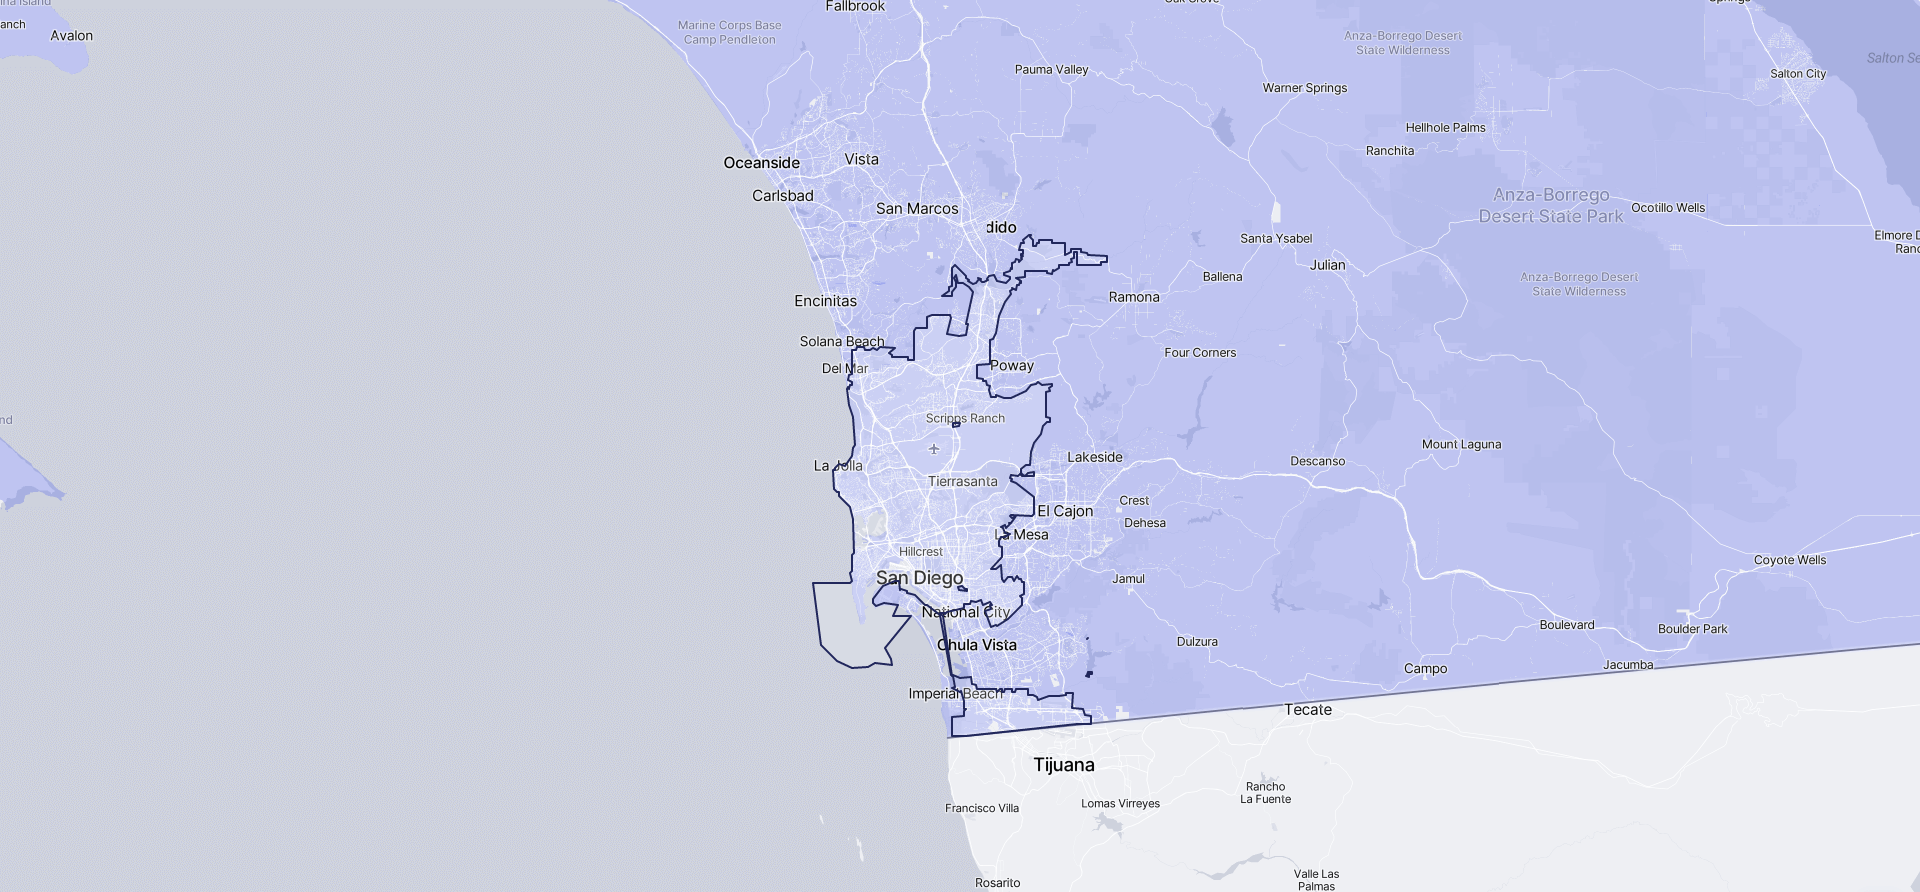 Image of San Diego boundaries on a map.